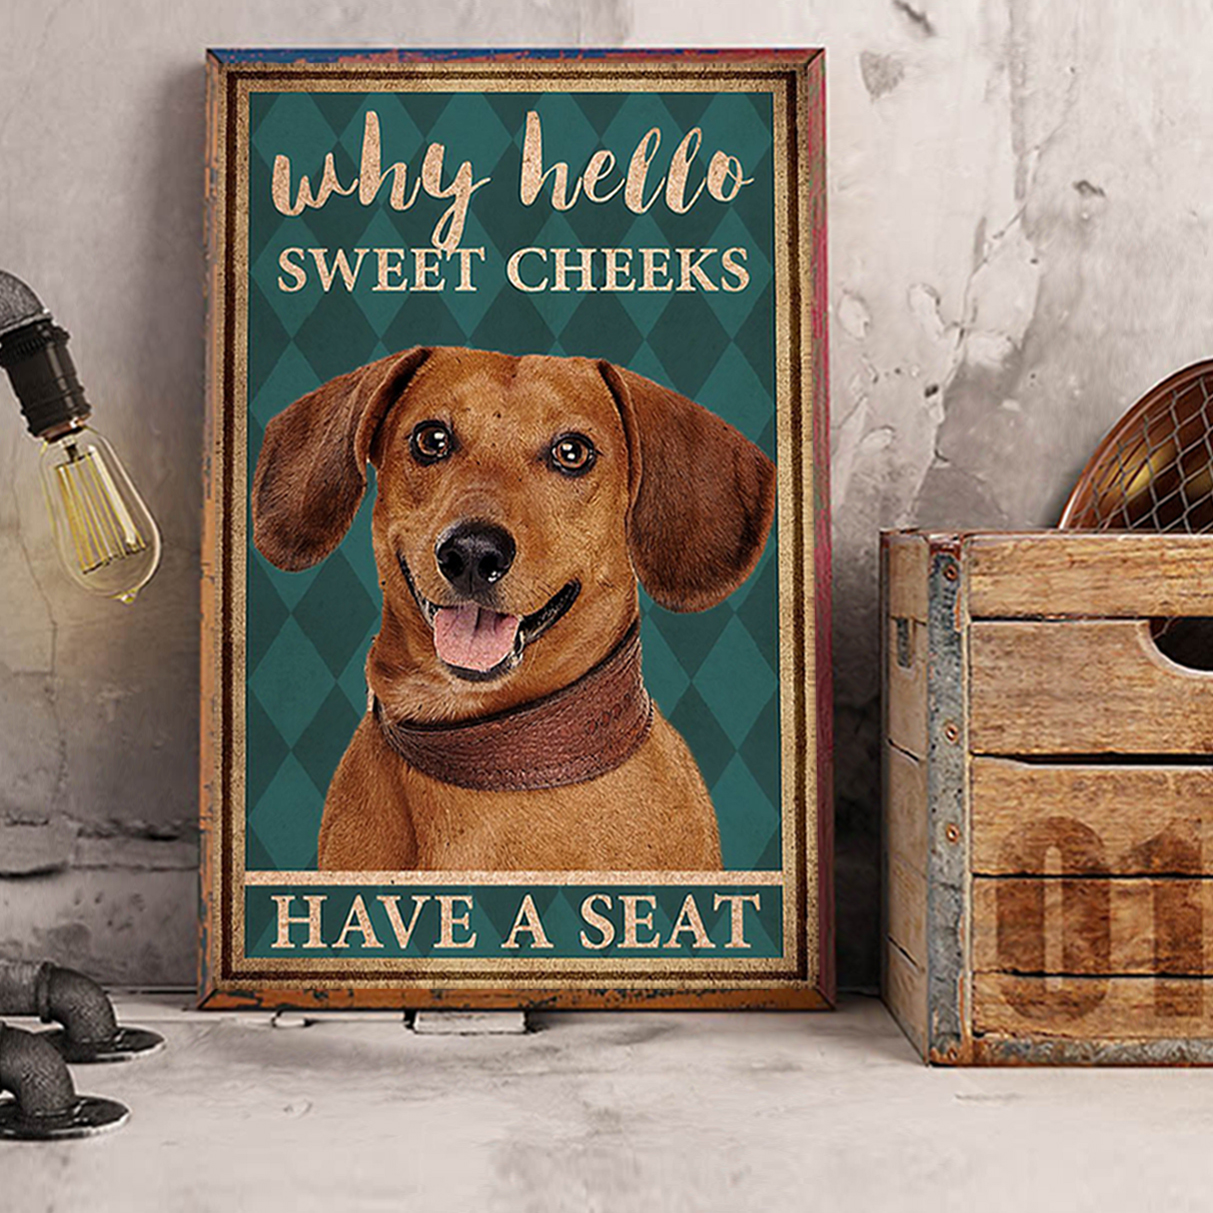 Dachshund why hello sweet cheeks have a seat poster A3